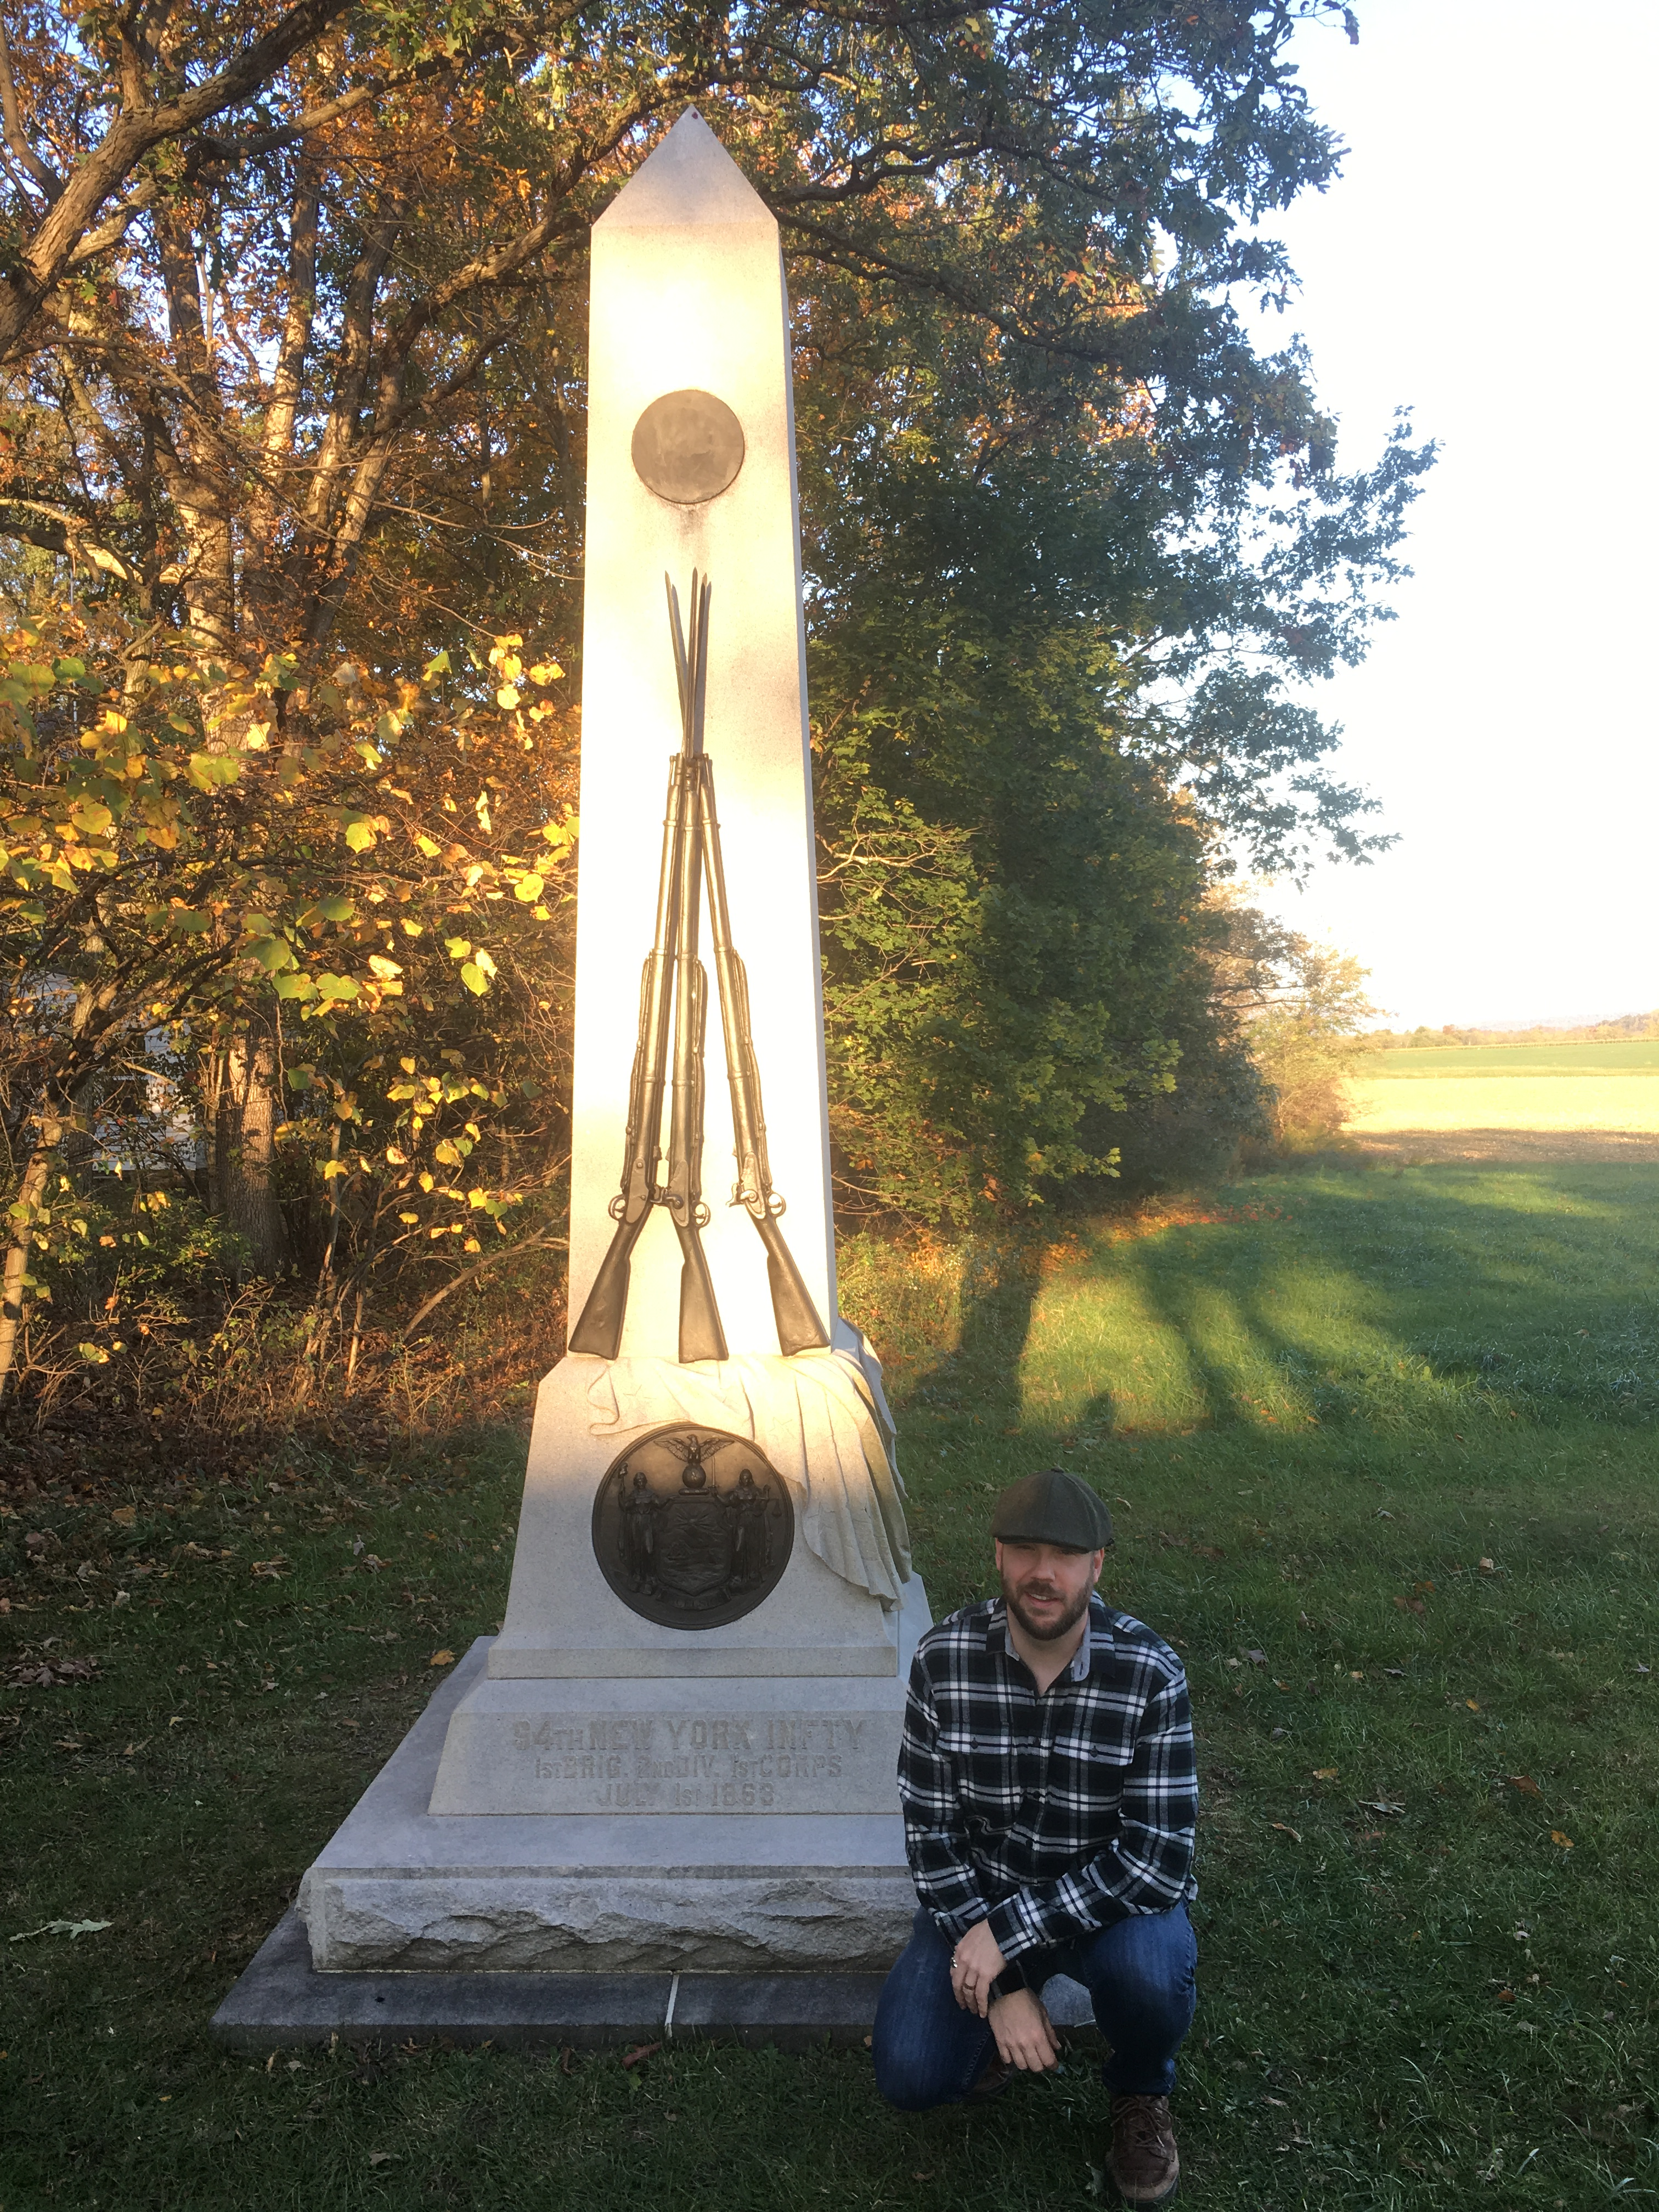 At the 94th New York Memorial, the first memorial I visited at Gettysburg (Damian Shiels)